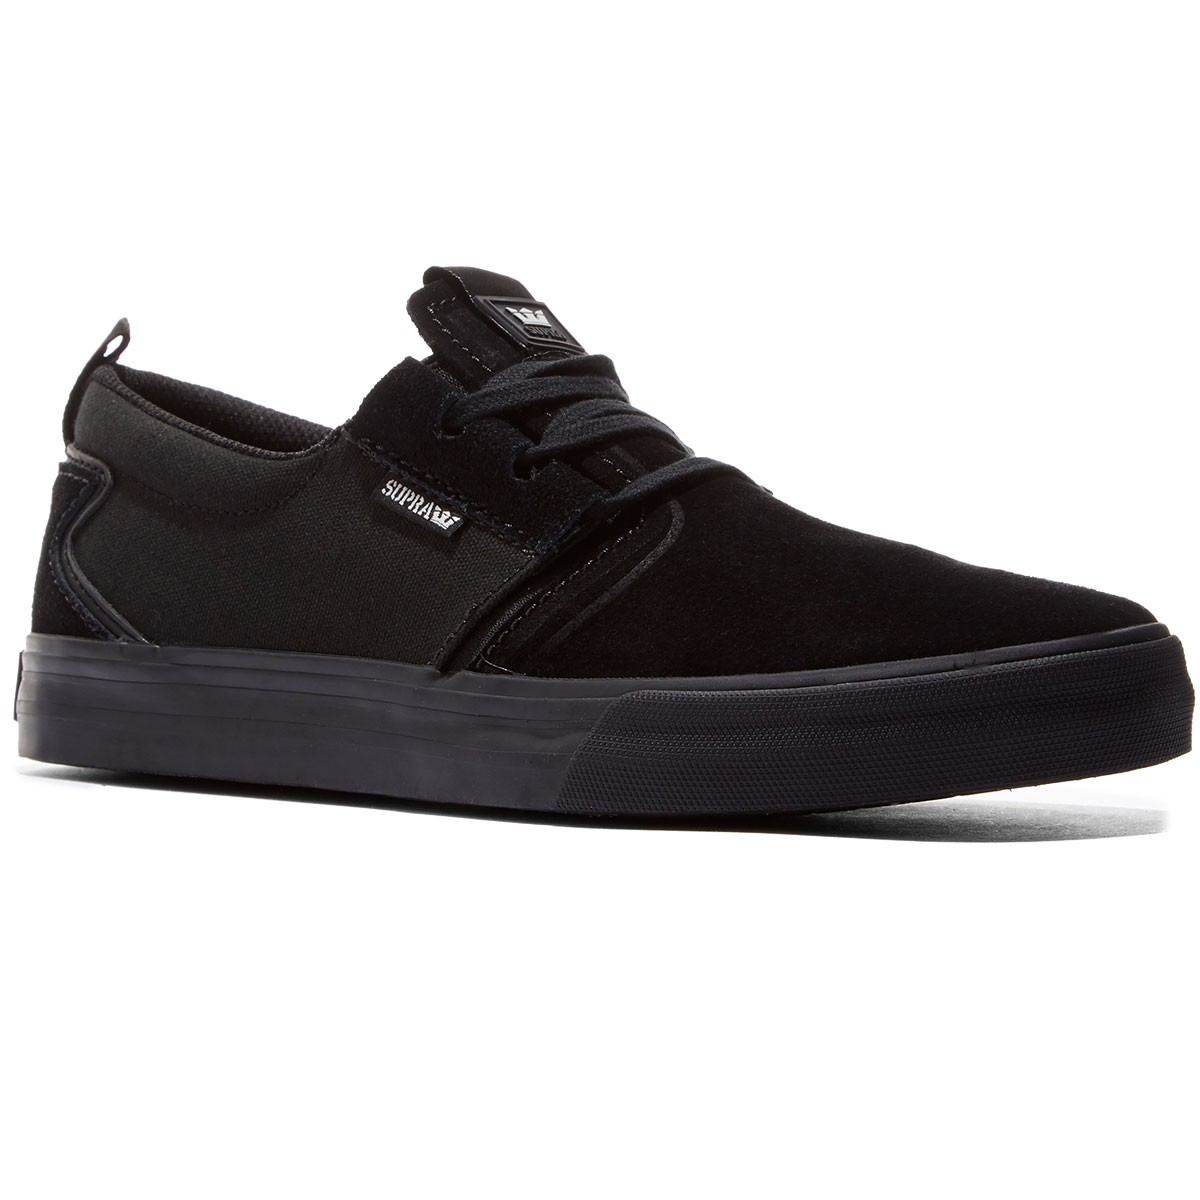 292e8f12432a Supra Flow Shoes - Black Black - 8.0